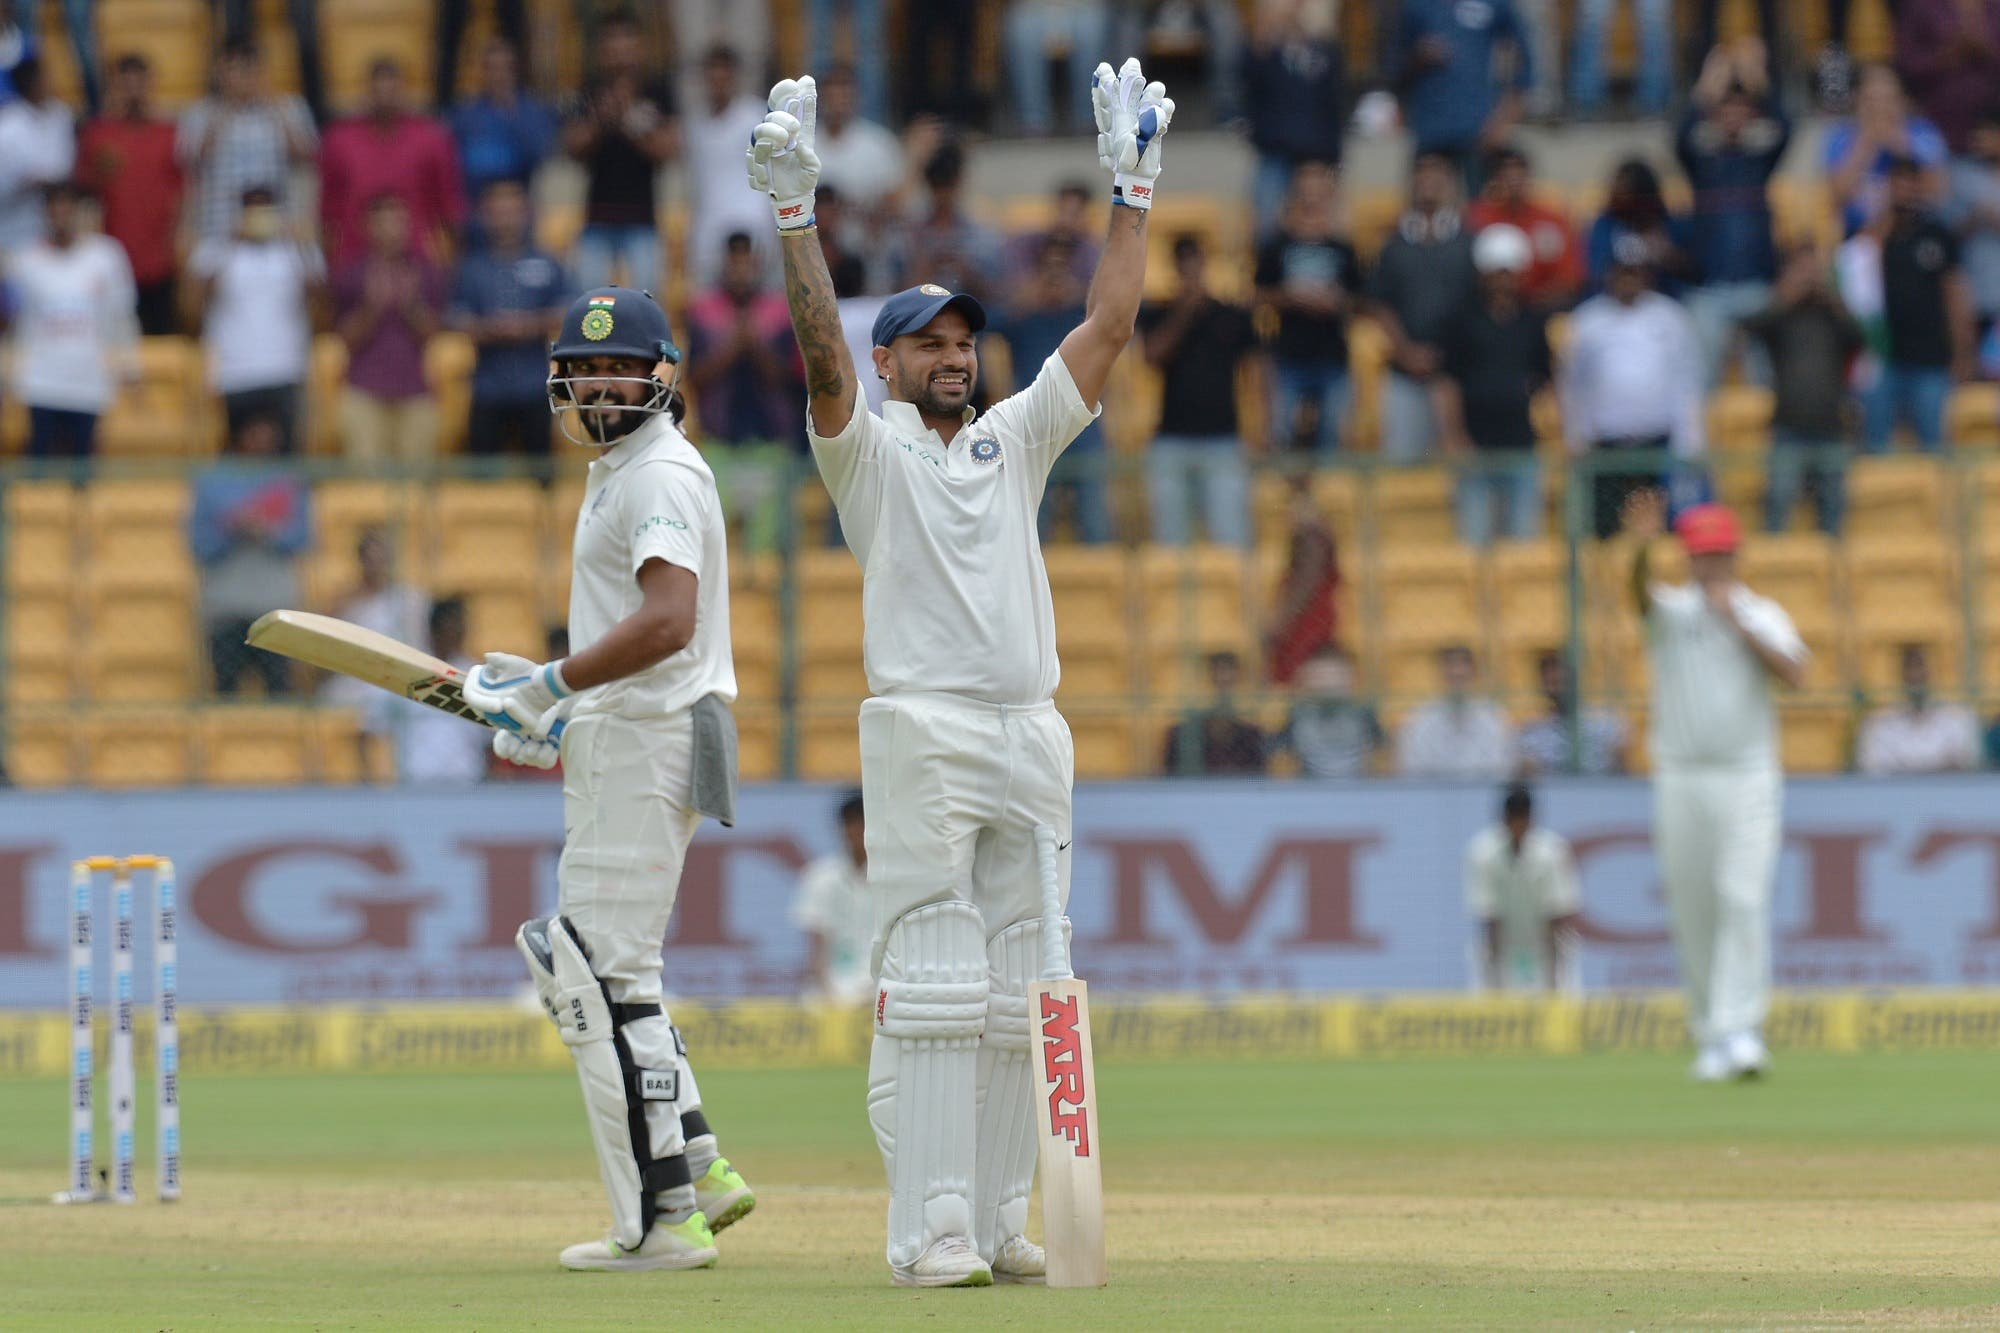 Indian cricketer Murali Vijay (L) looks on as teammate Shikhar Dhawan (C) celebrates his century (100 runs) during the first day of the one-off cricket Test match between India and Afghanistan in Bangalore on June 14, 2018. (AFP)